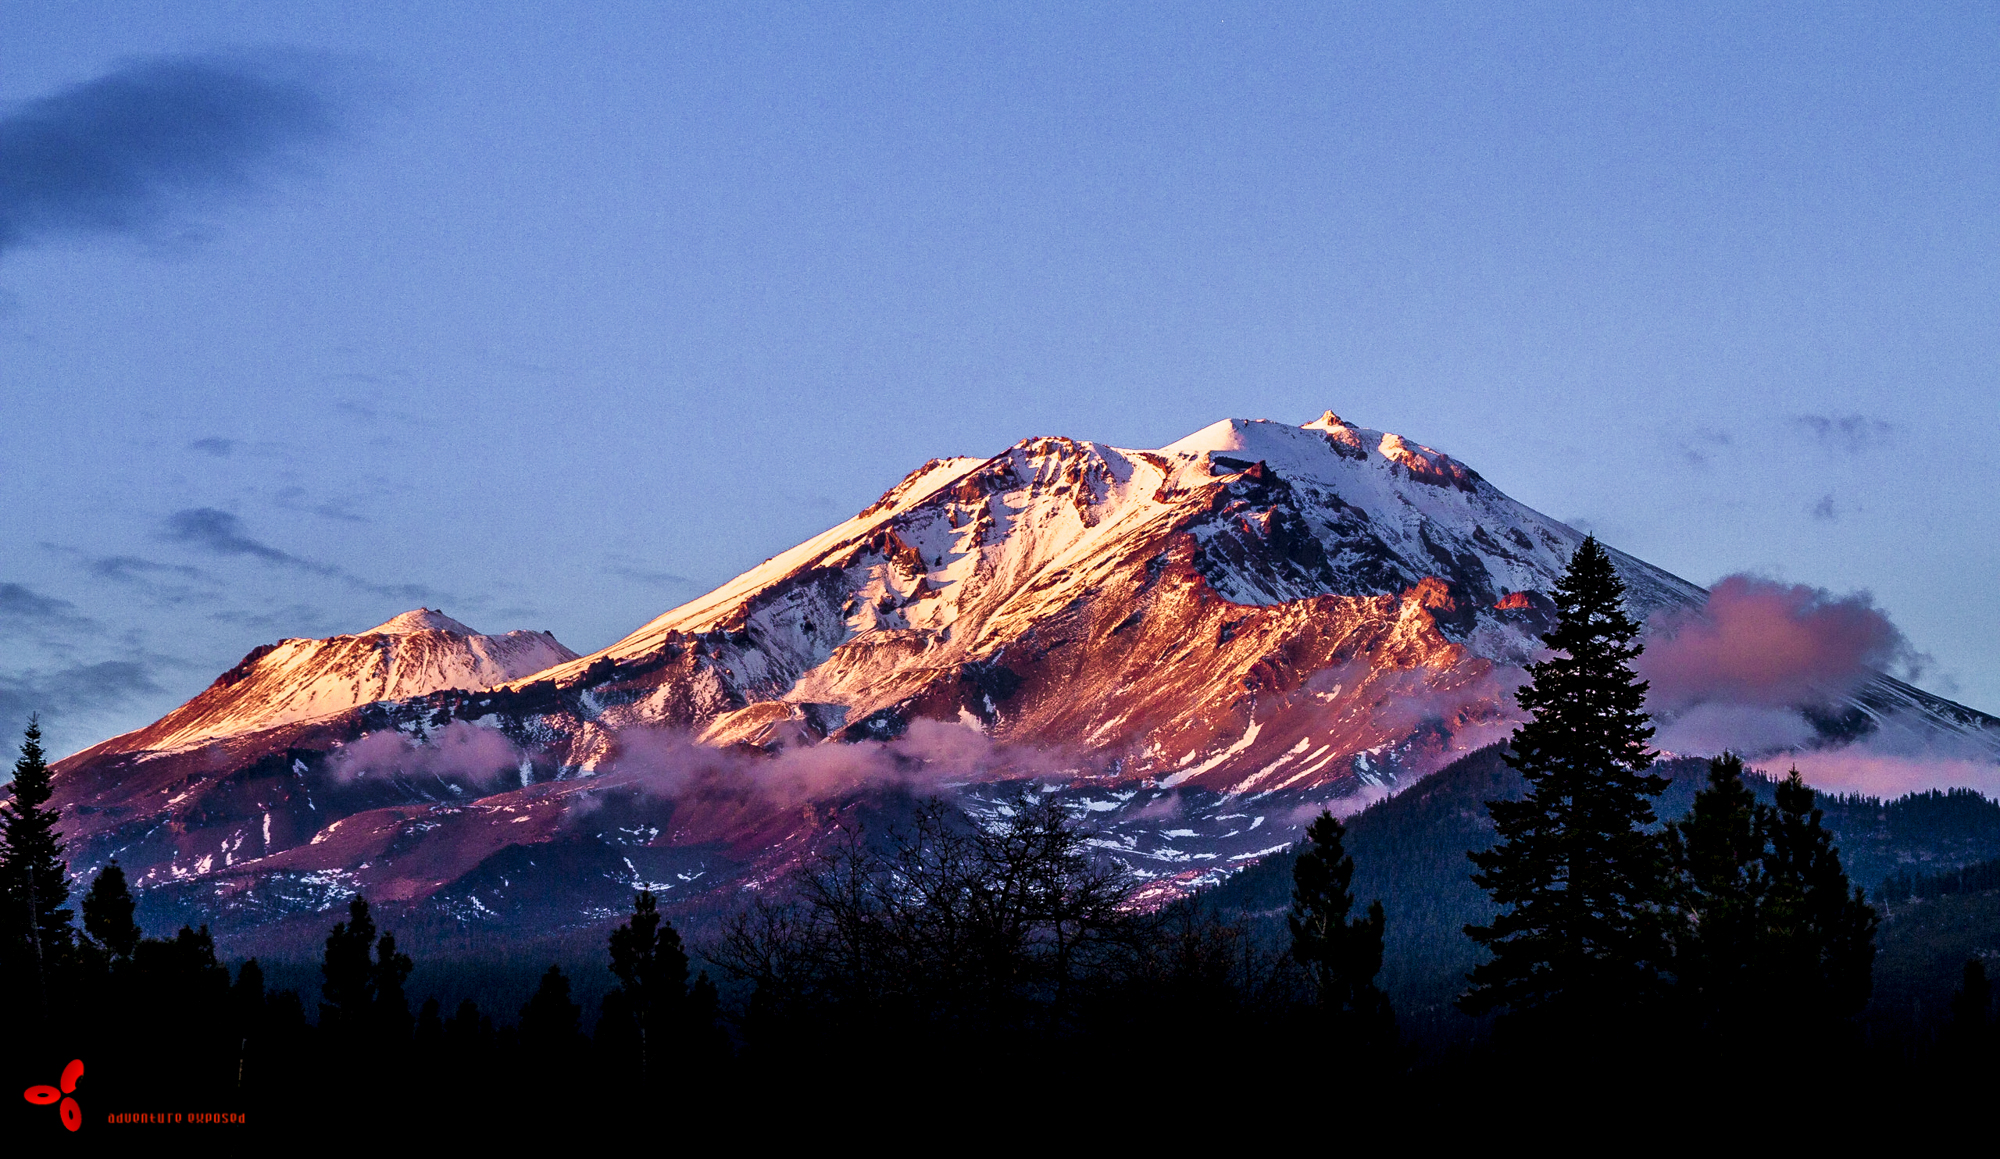 Heading up to the snow of Mt Shasta.